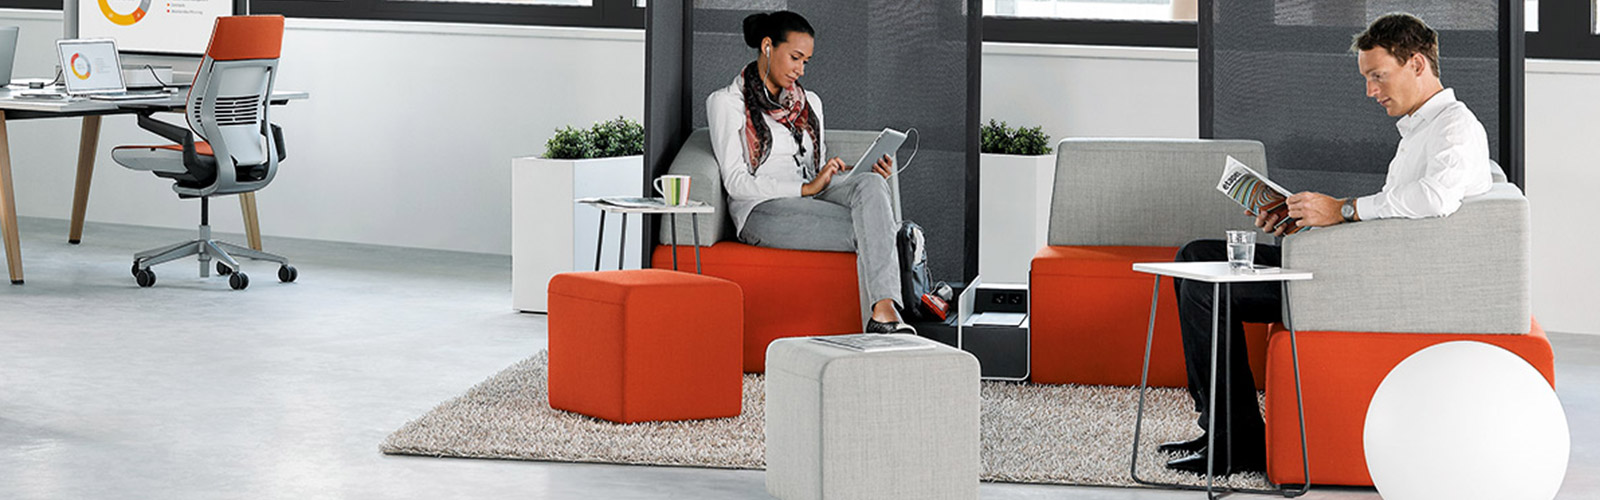 The best furniture to include in a co-working space to boost collaboration and productivity